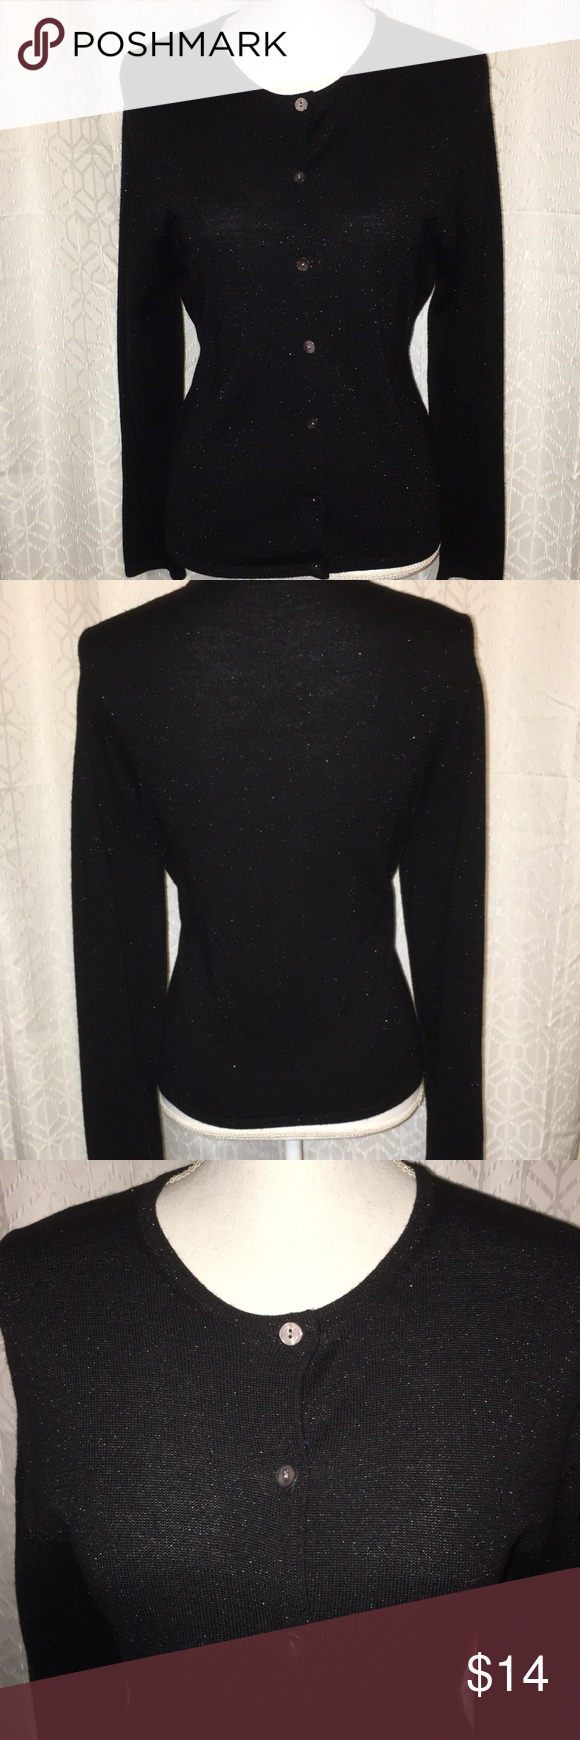 NWOT VALERIE STEVENS BLACK SHINEY SWEATER SZ PL This beautiful ...